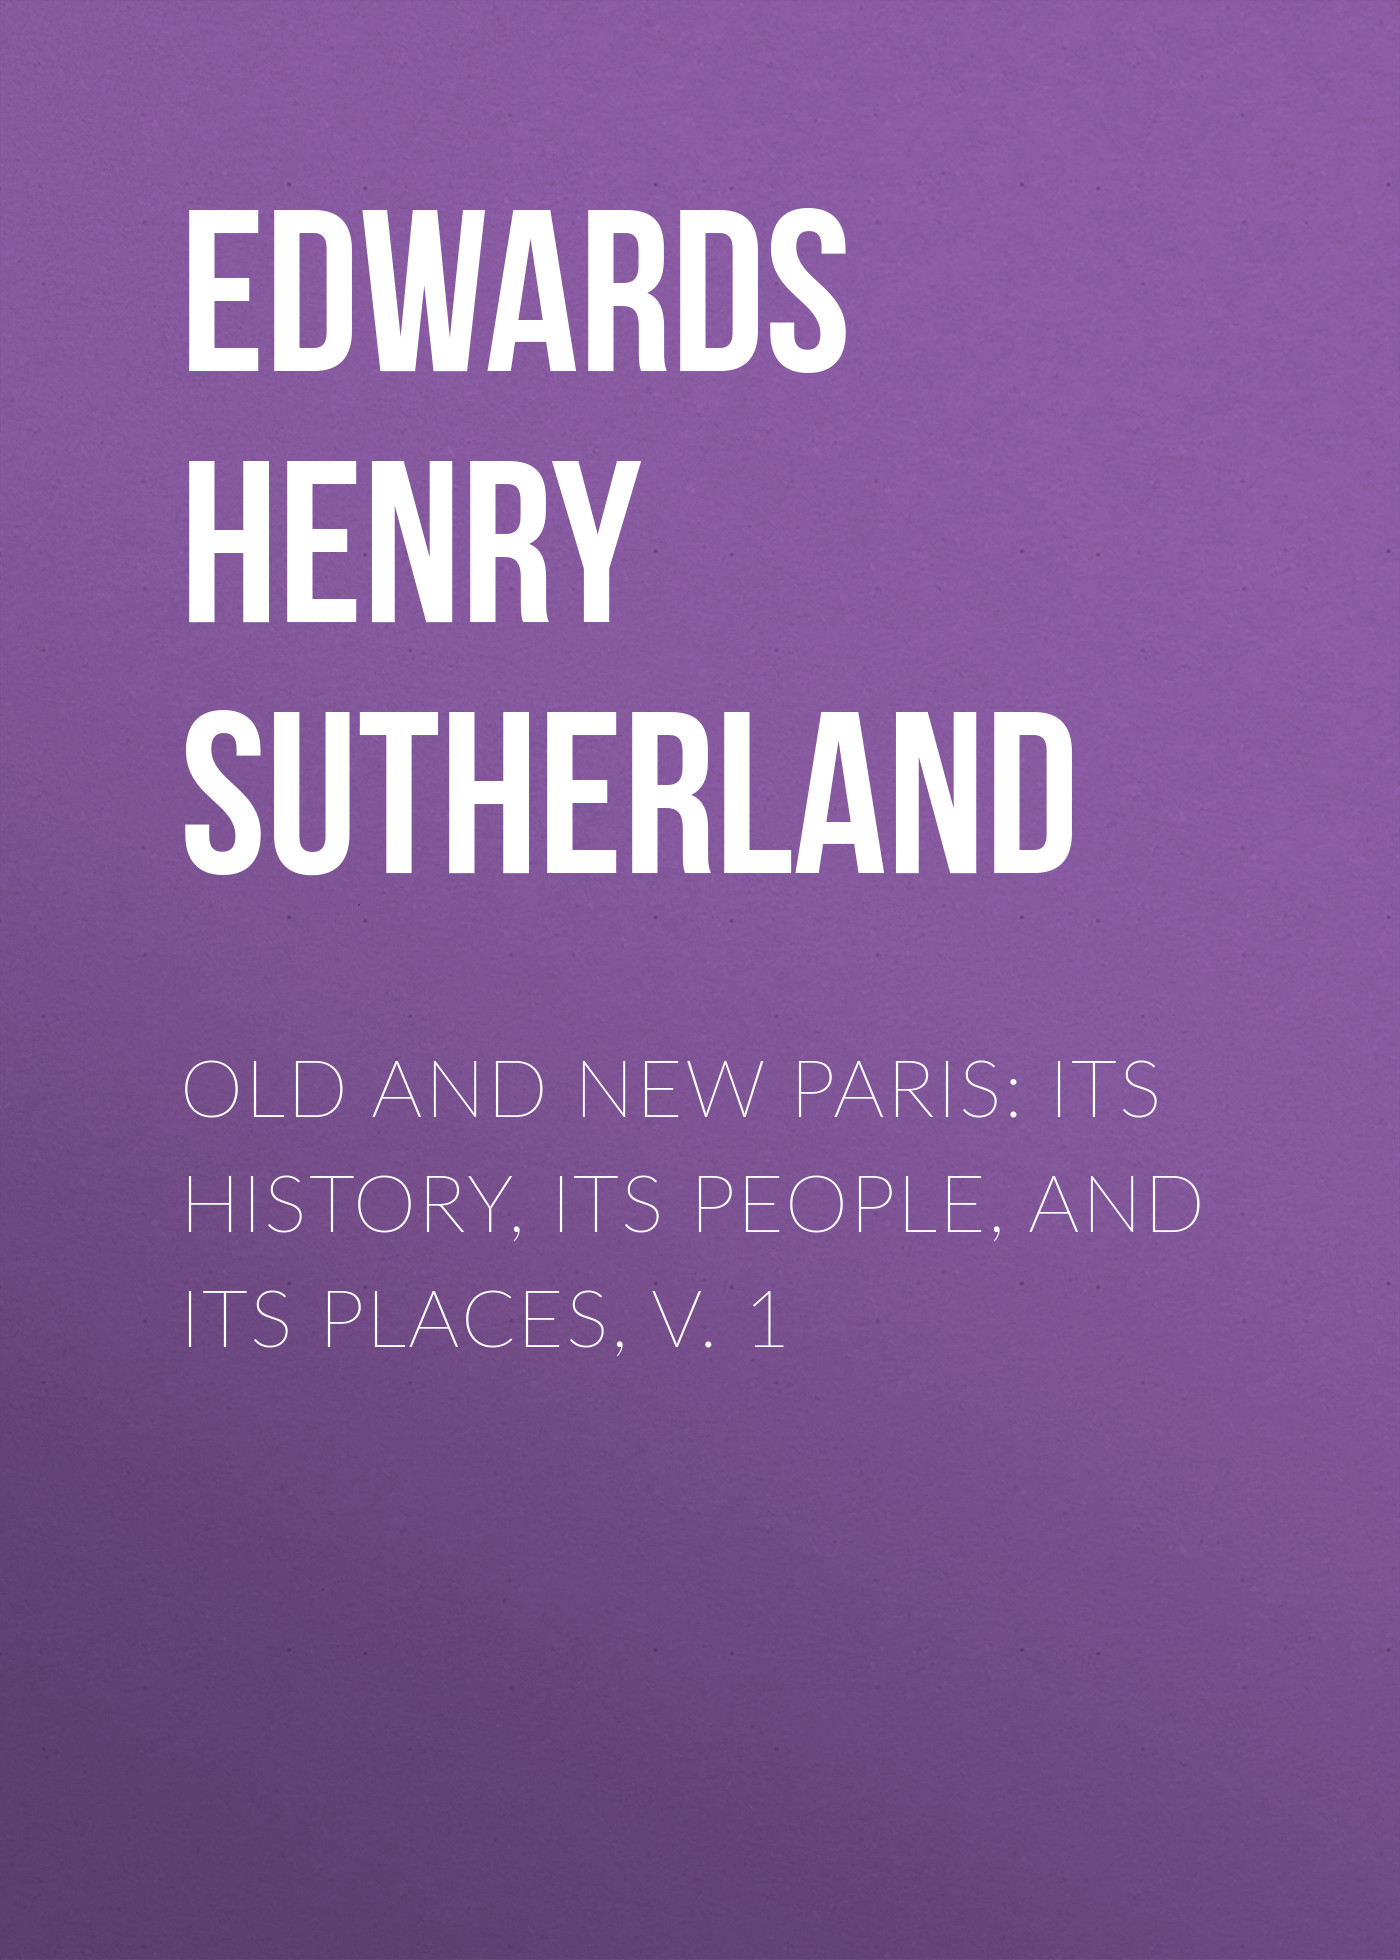 Edwards Henry Sutherland Old and New Paris: Its History, Its People, and Its Places, v. 1 g l shumway history of western nebraska and its people volume 3 part 1